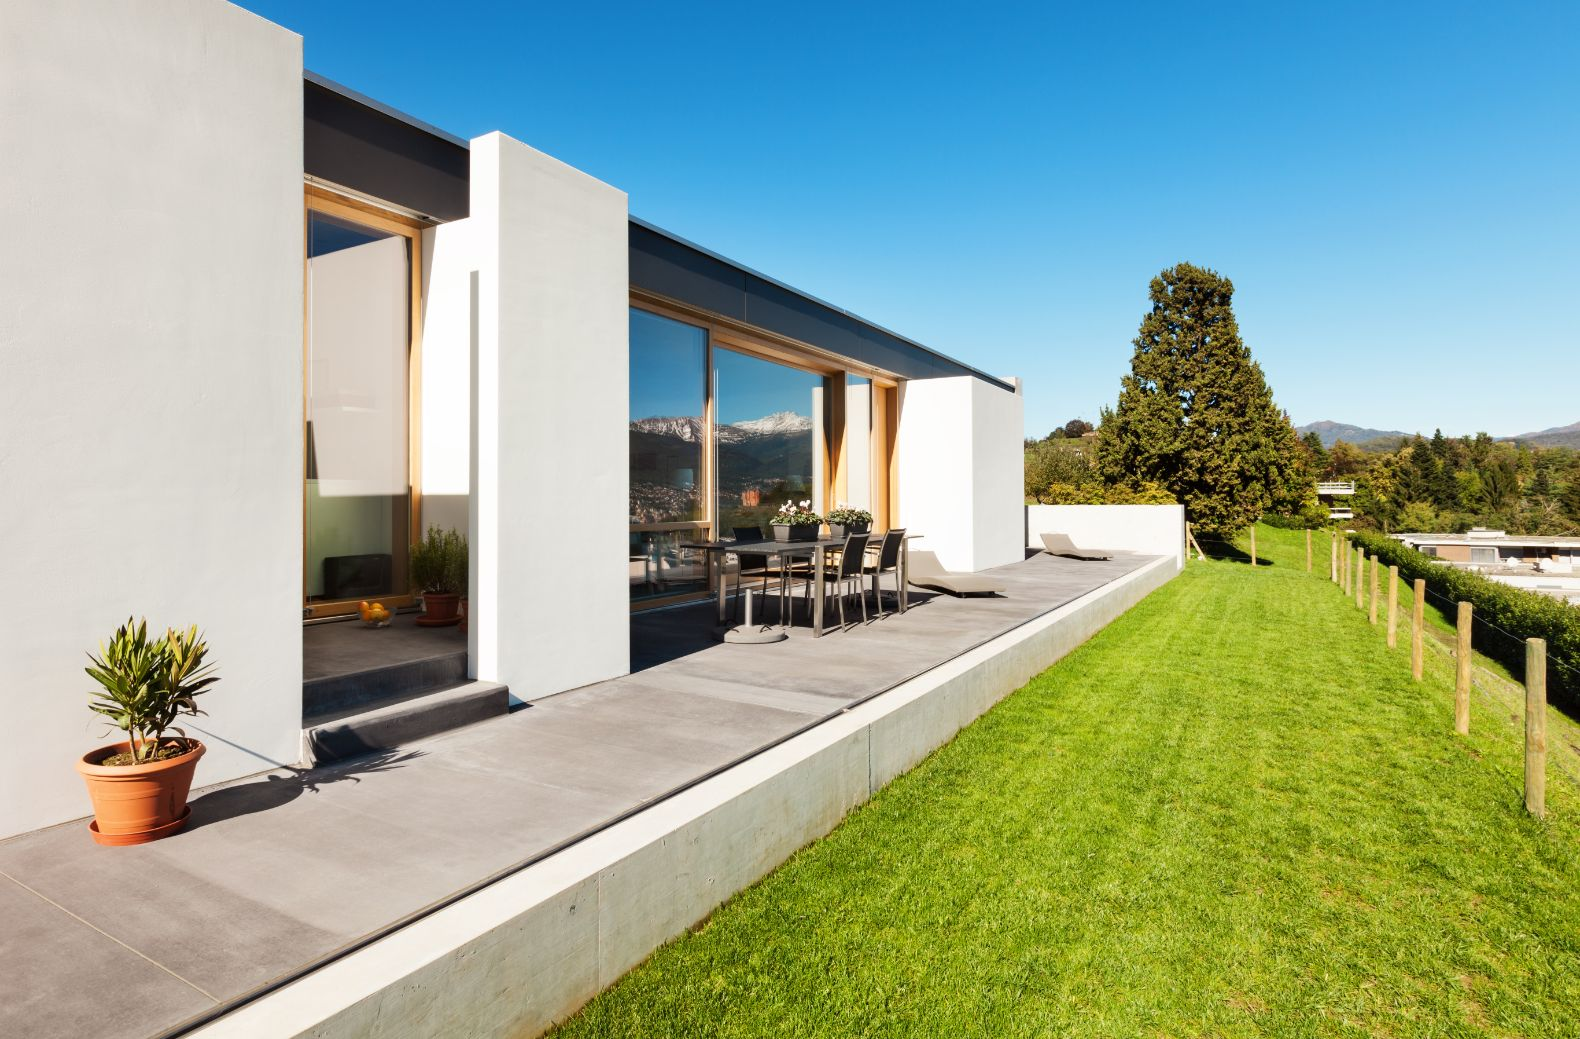 Outdoor deck and turf laying in Ballarat Victoria